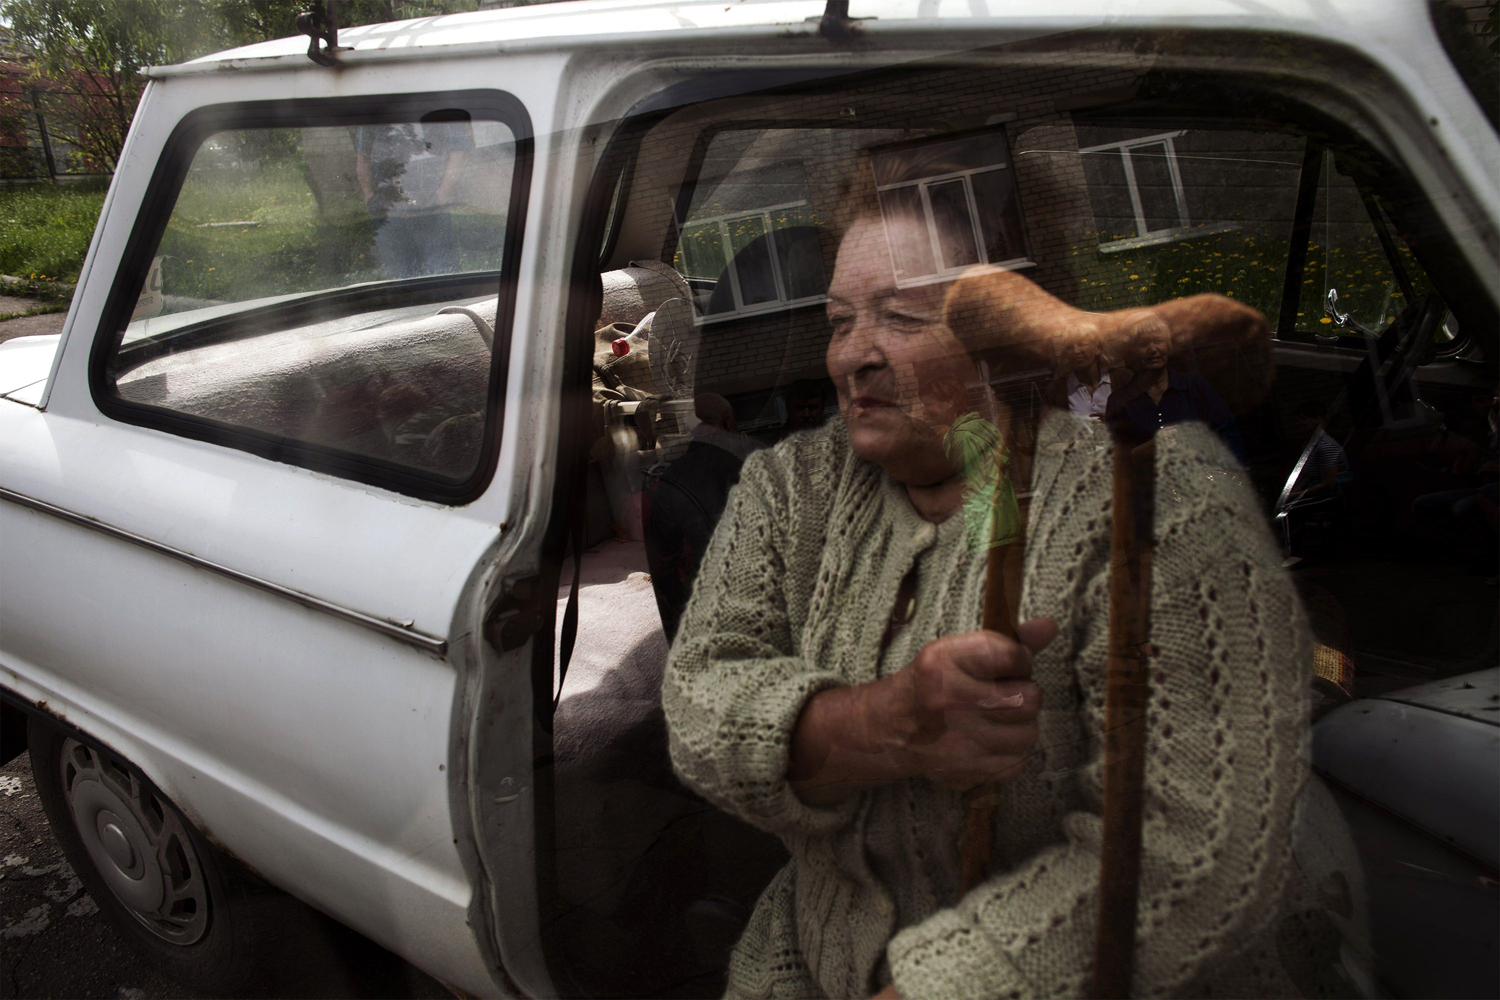 May 11, 2014. An elderly Ukrainian woman waits for help to go to vote at a polling station in the Ukrainian city of Budennovskiy.